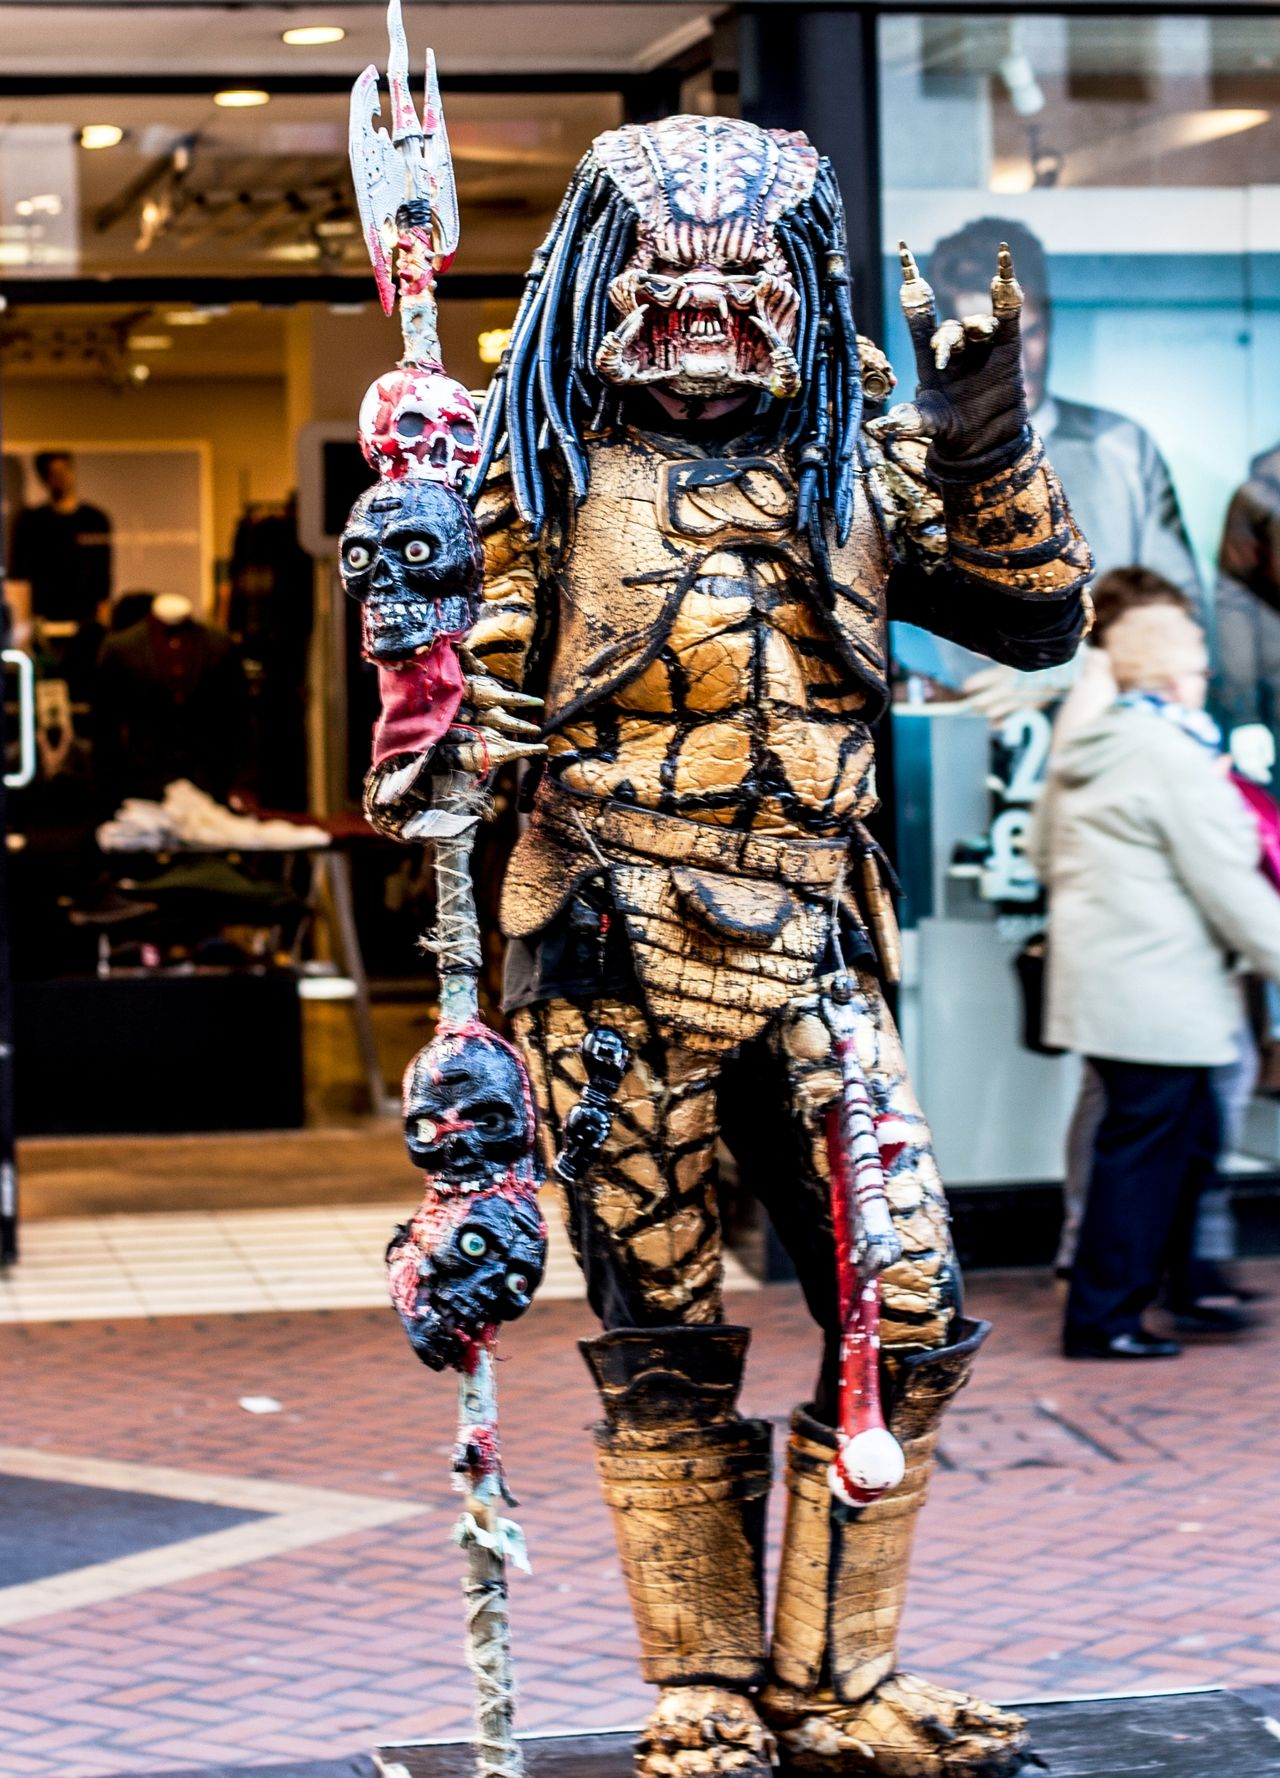 Street Performer - Birmingham Alien Animal Representation Art Creativity Human Representation Inspired By Movies Portrait Sculpture Street Performer